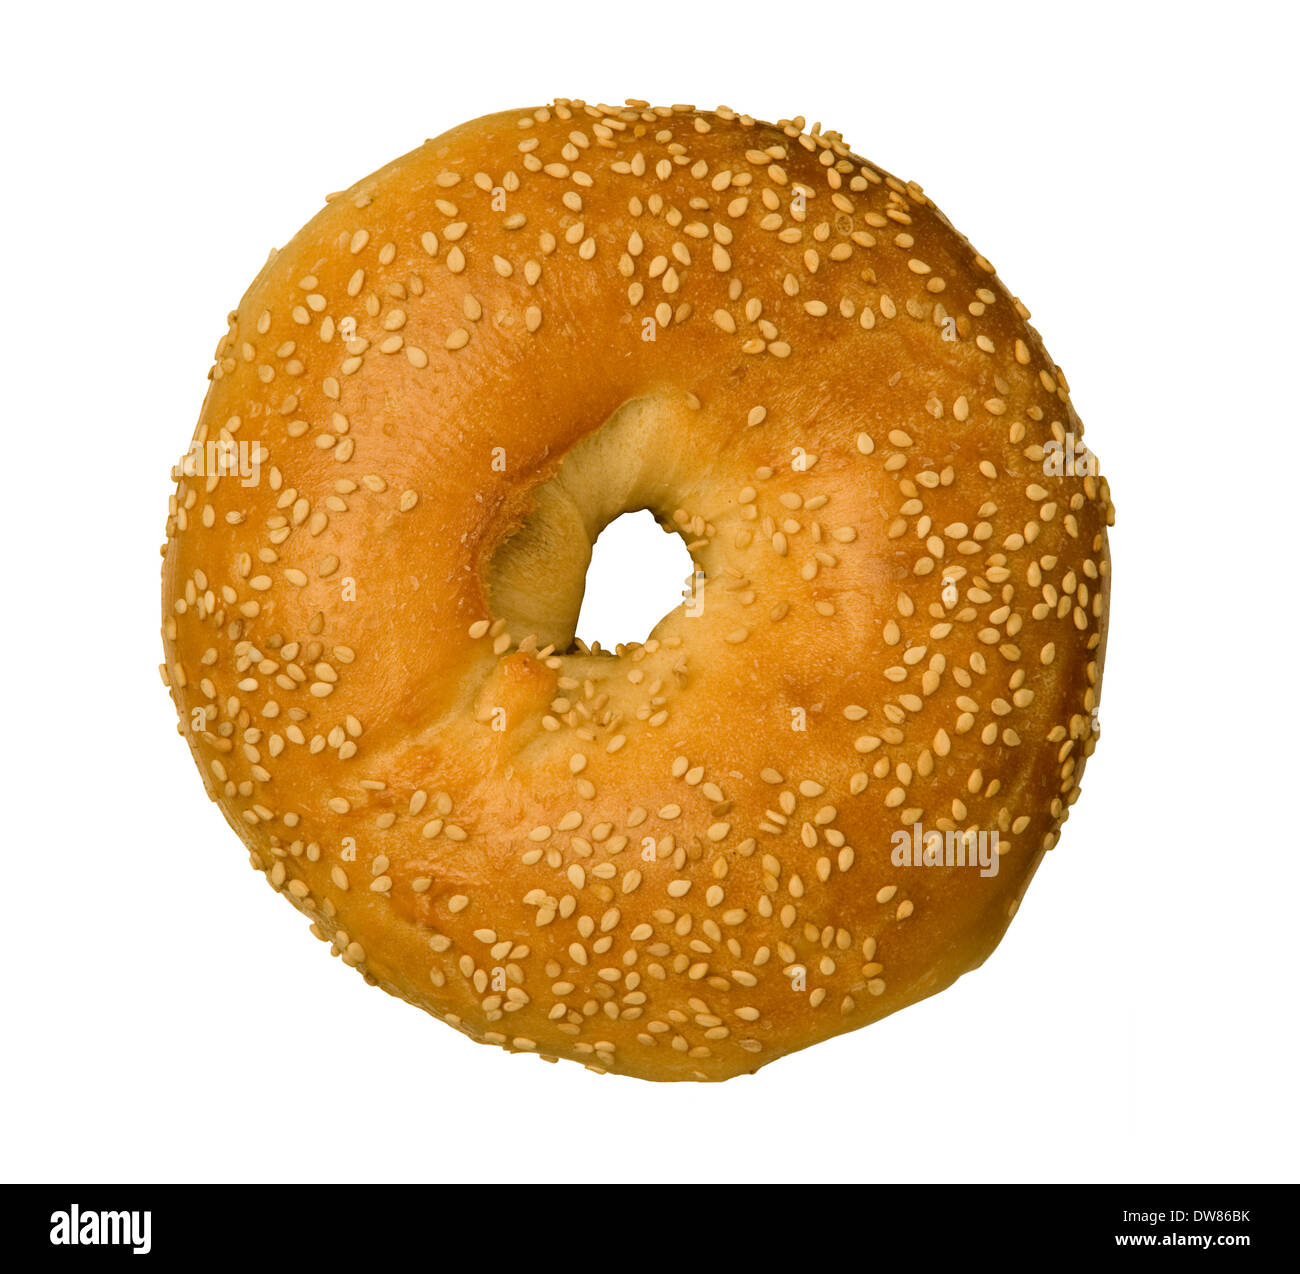 Sesame Seed Bagel isolated against white background - Stock Image